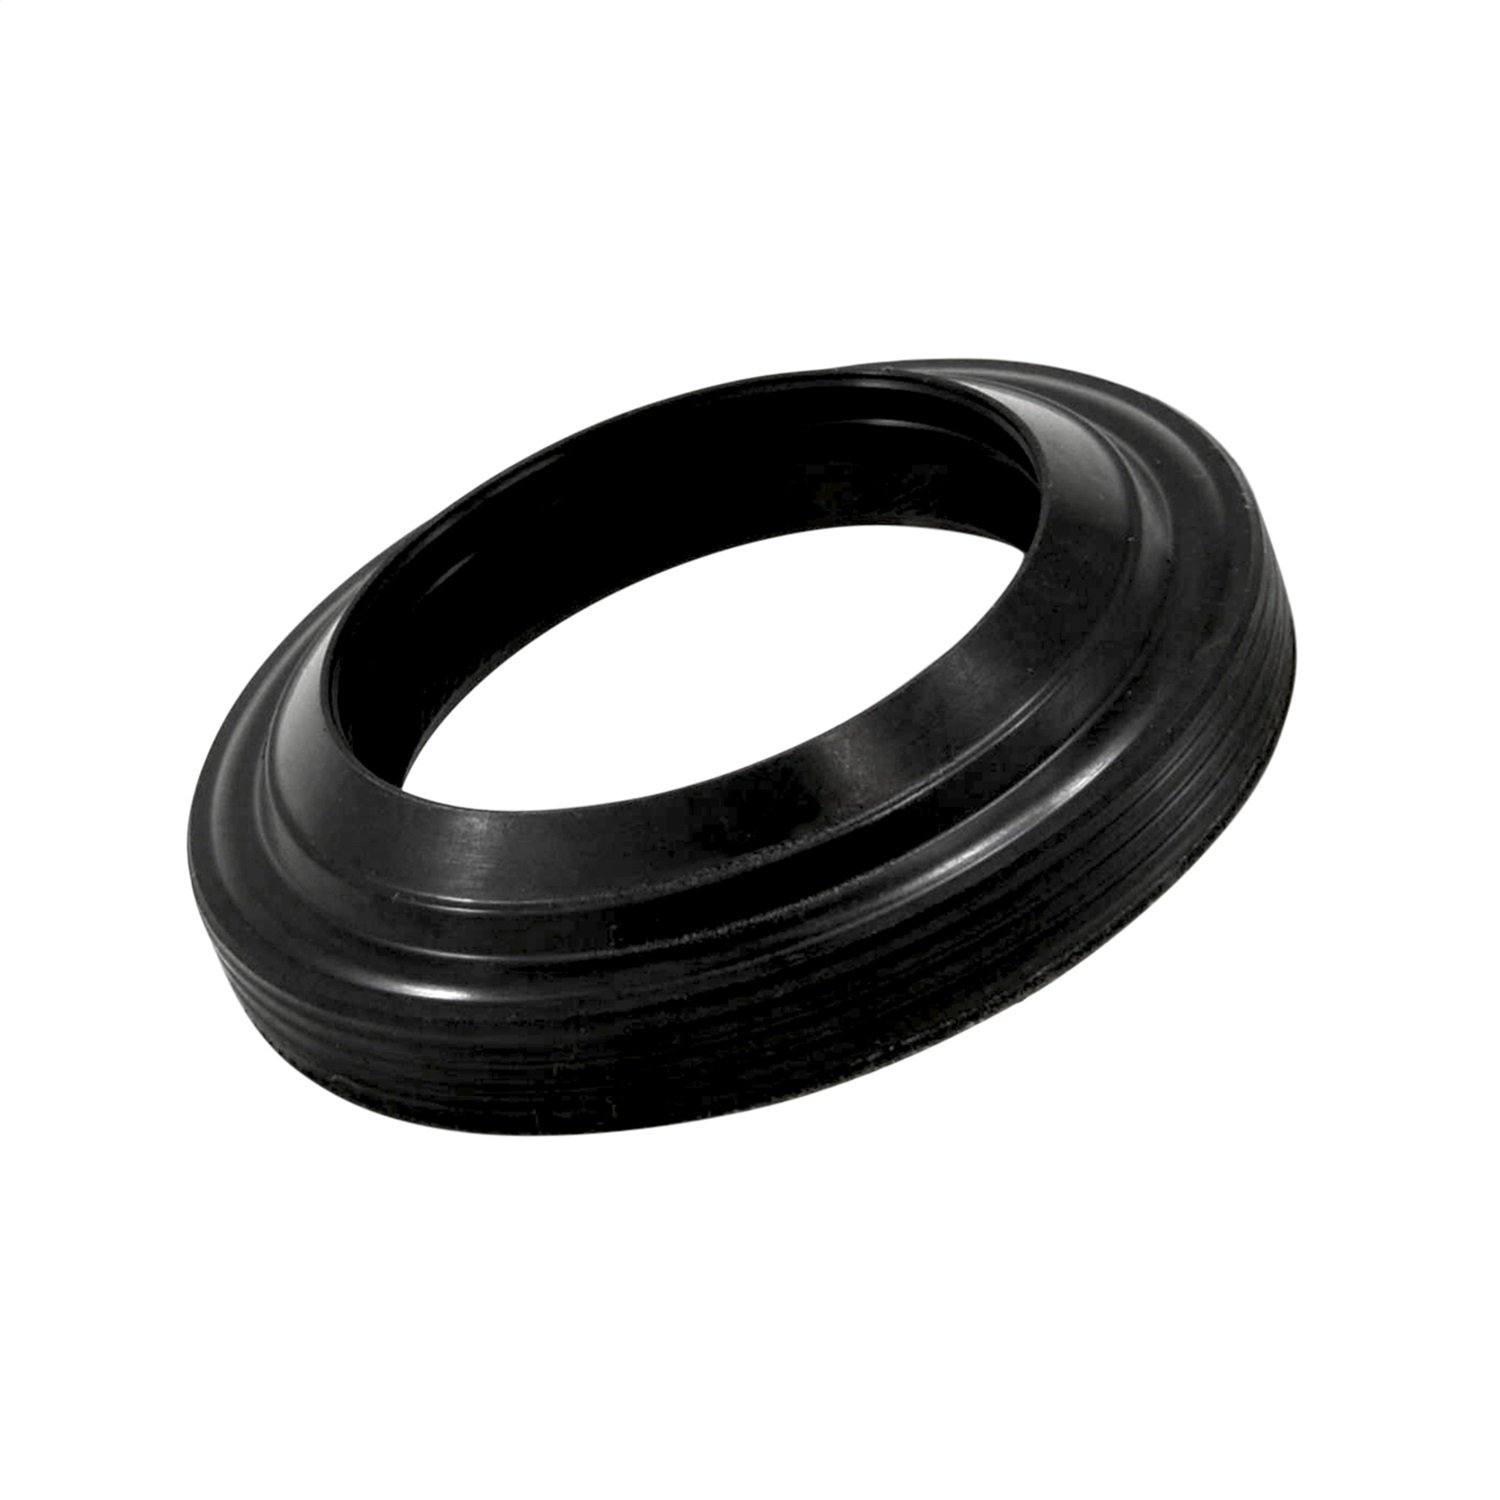 Yukon (YMSS1019) Rear Replacement Axle Seal for Jeep JK Dana 44 Differential